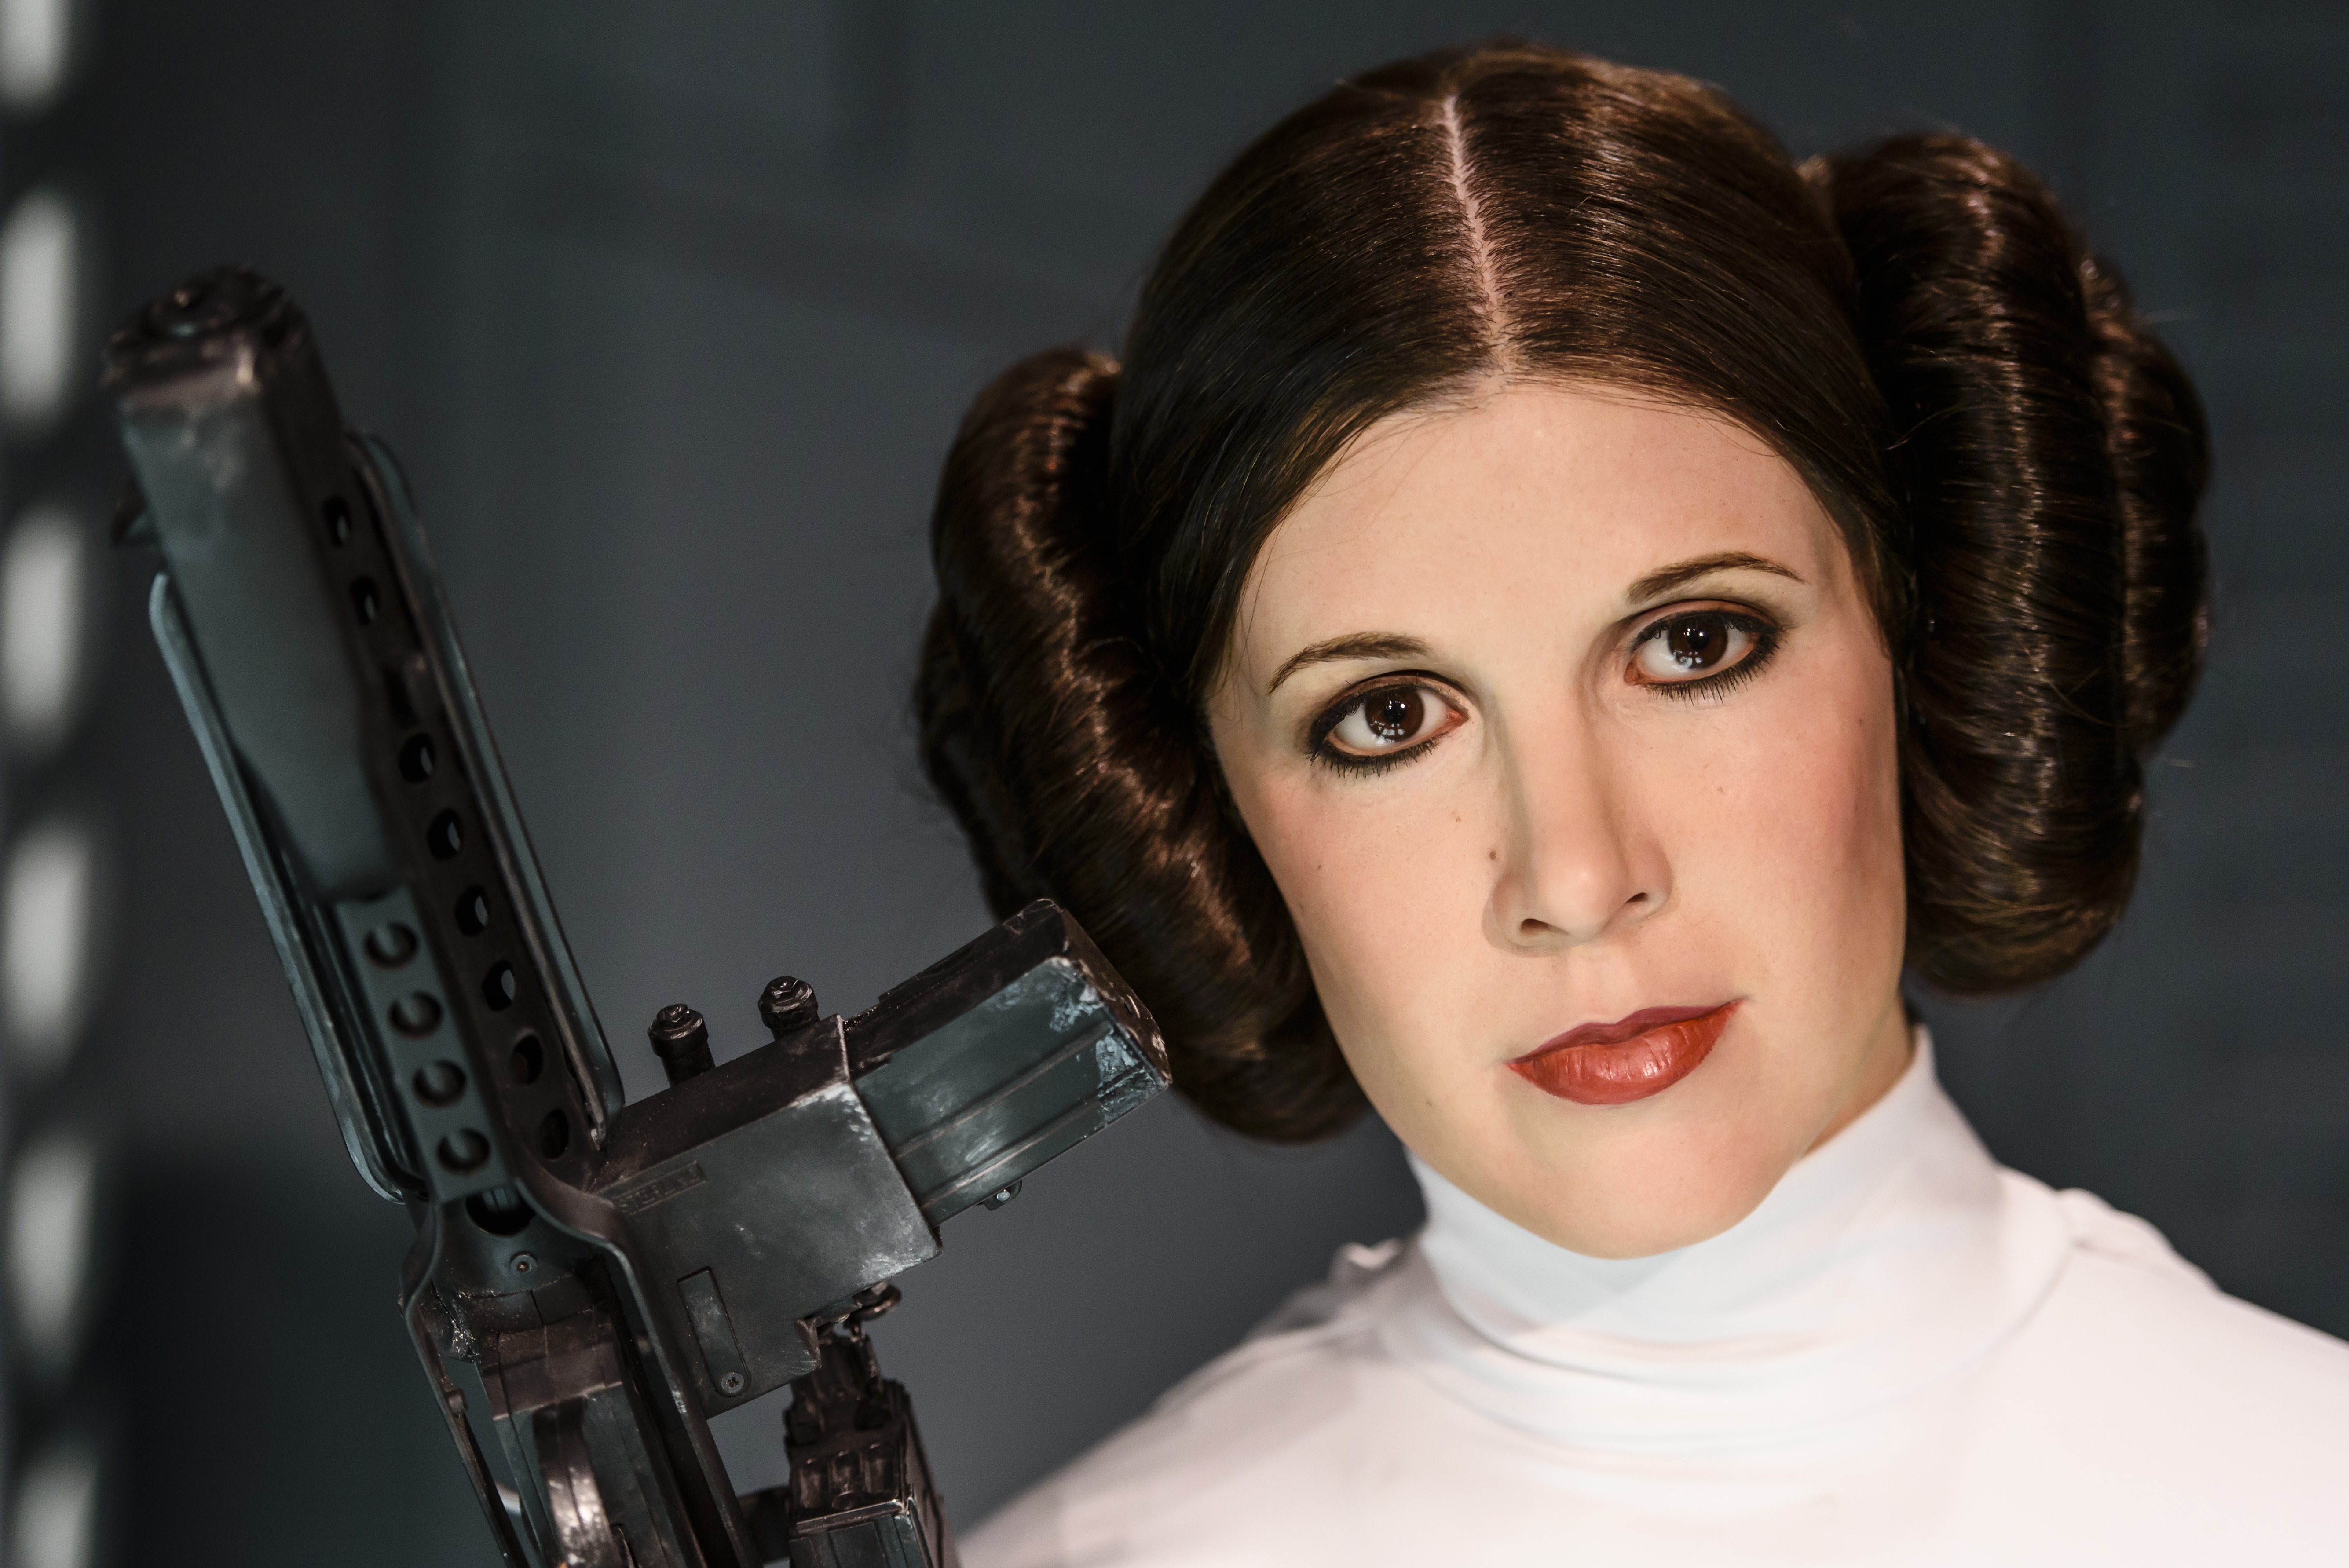 Princess Leia's Iconic Buns Were Inspired By These Revolutionary-Era Mexican Women